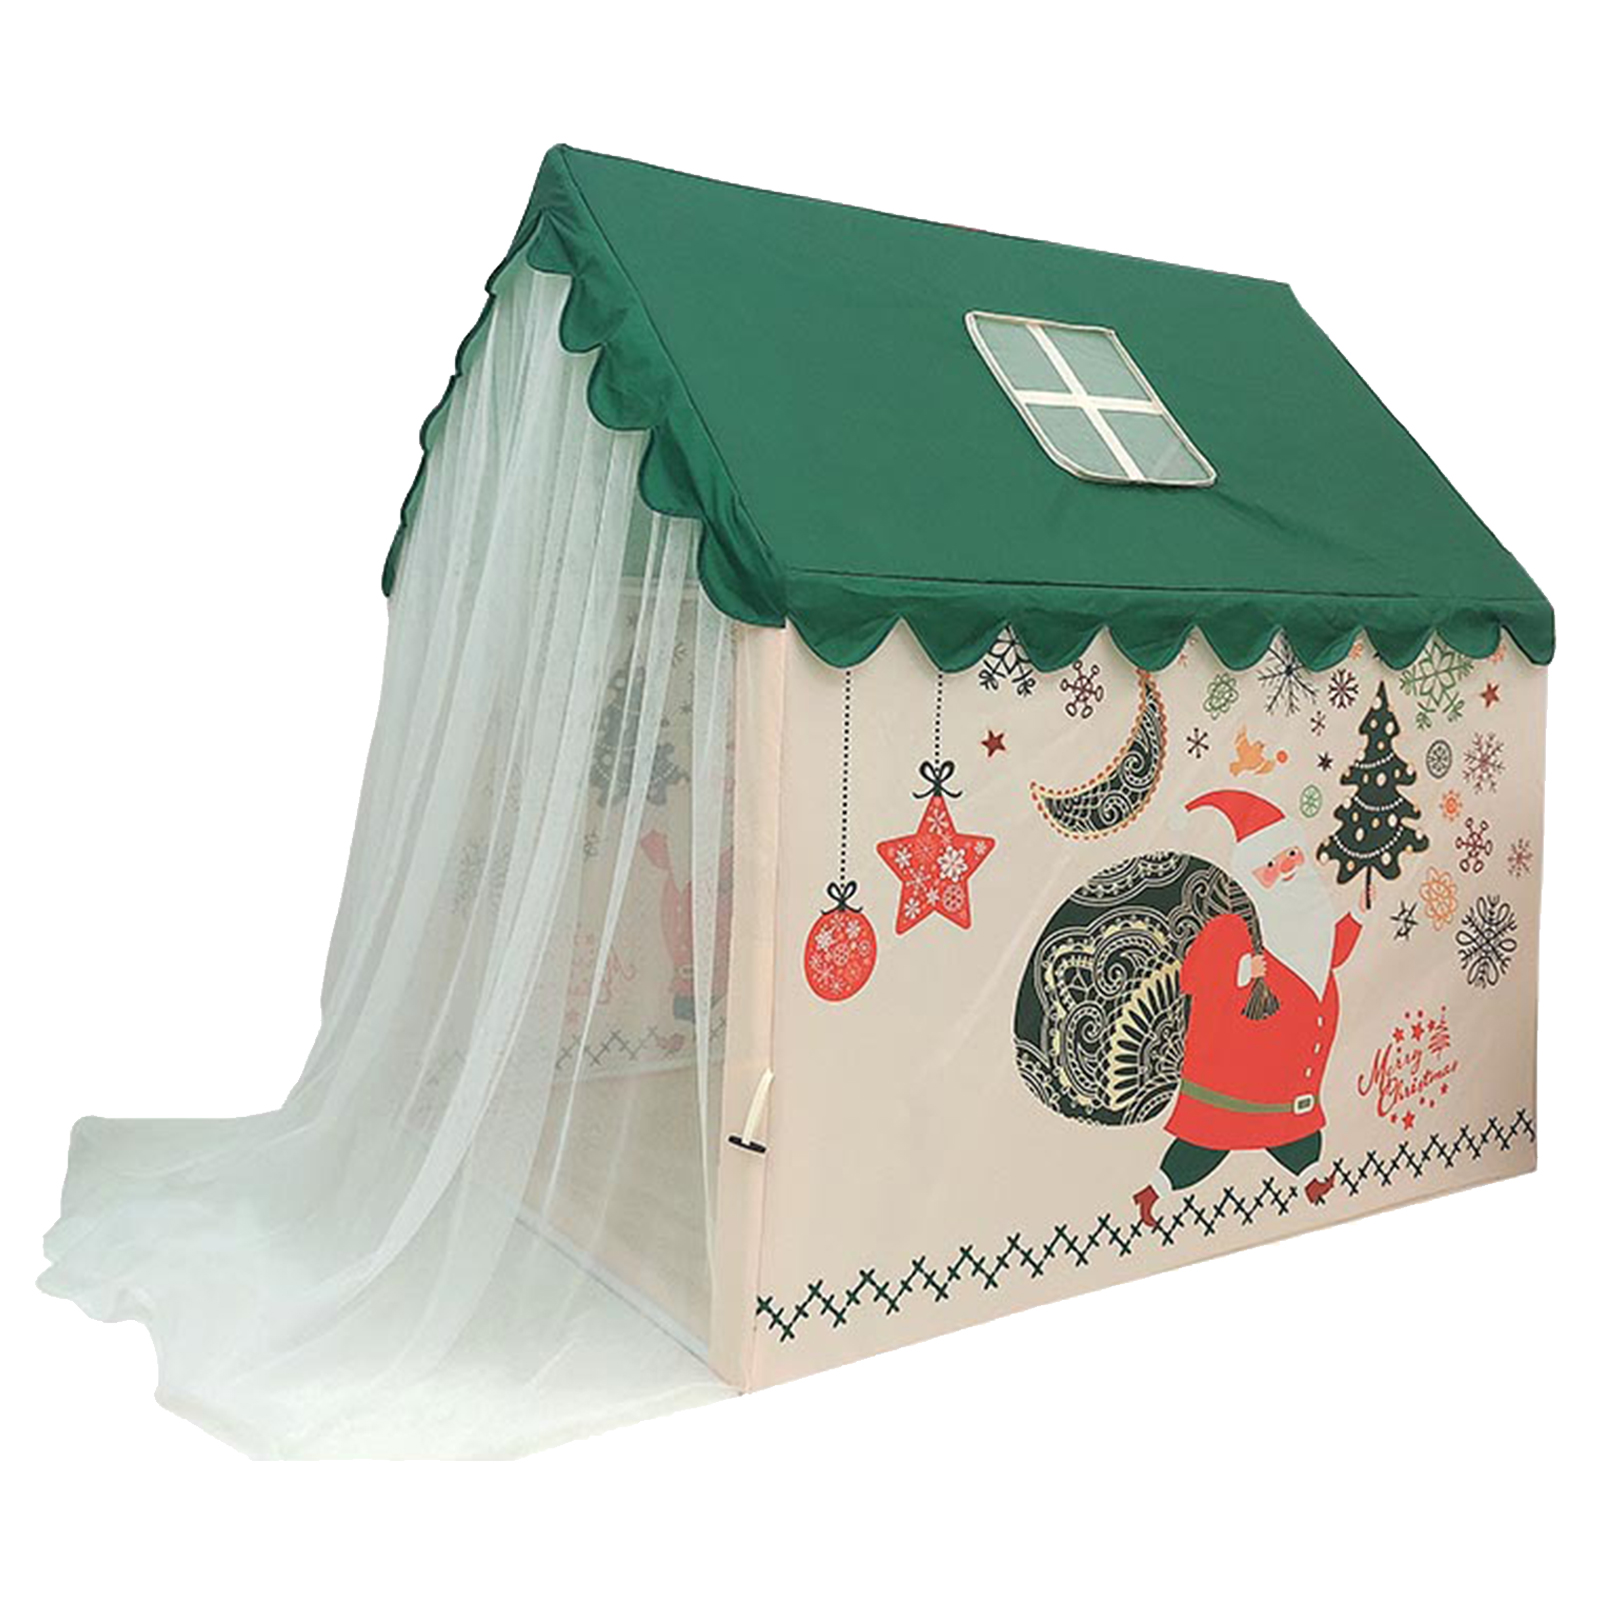 Children Castle Tent Play Tent Portable Pretend Toy Indoor Outdoor Fortable Game House Interesting Zone Room For Kids